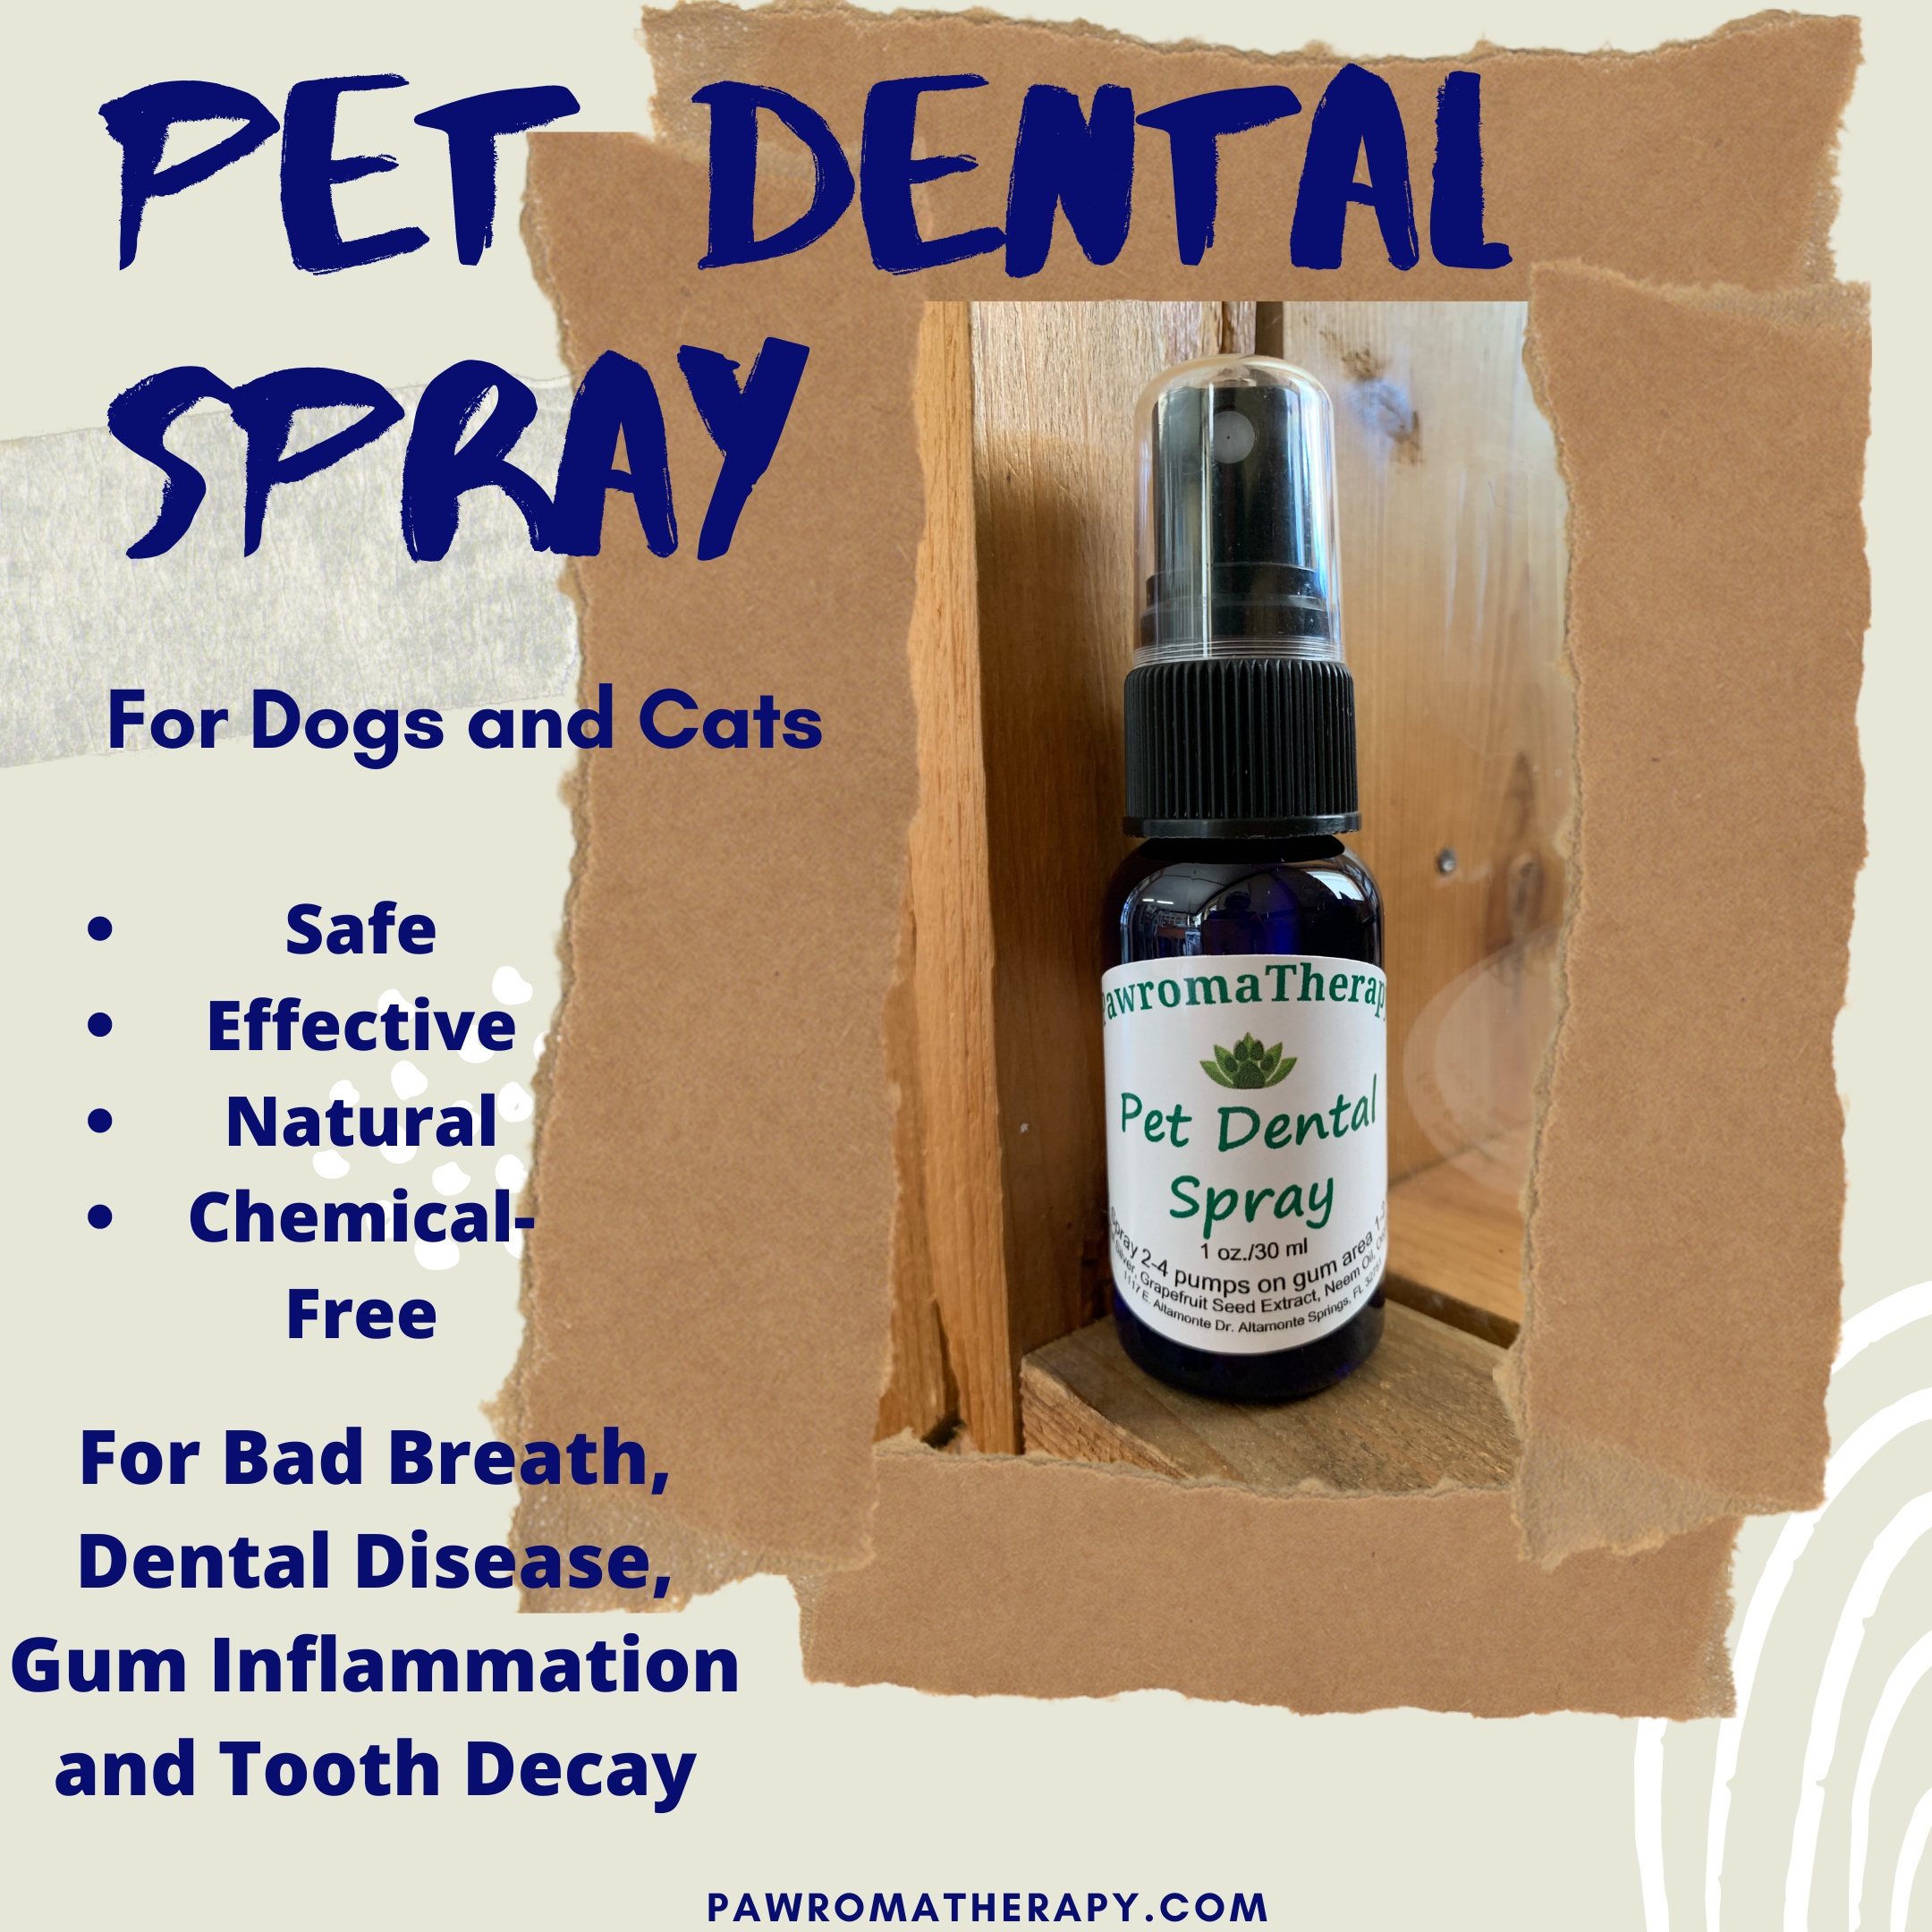 Natural Pet Dental Care Spray for Dogs and Cats, 1oz